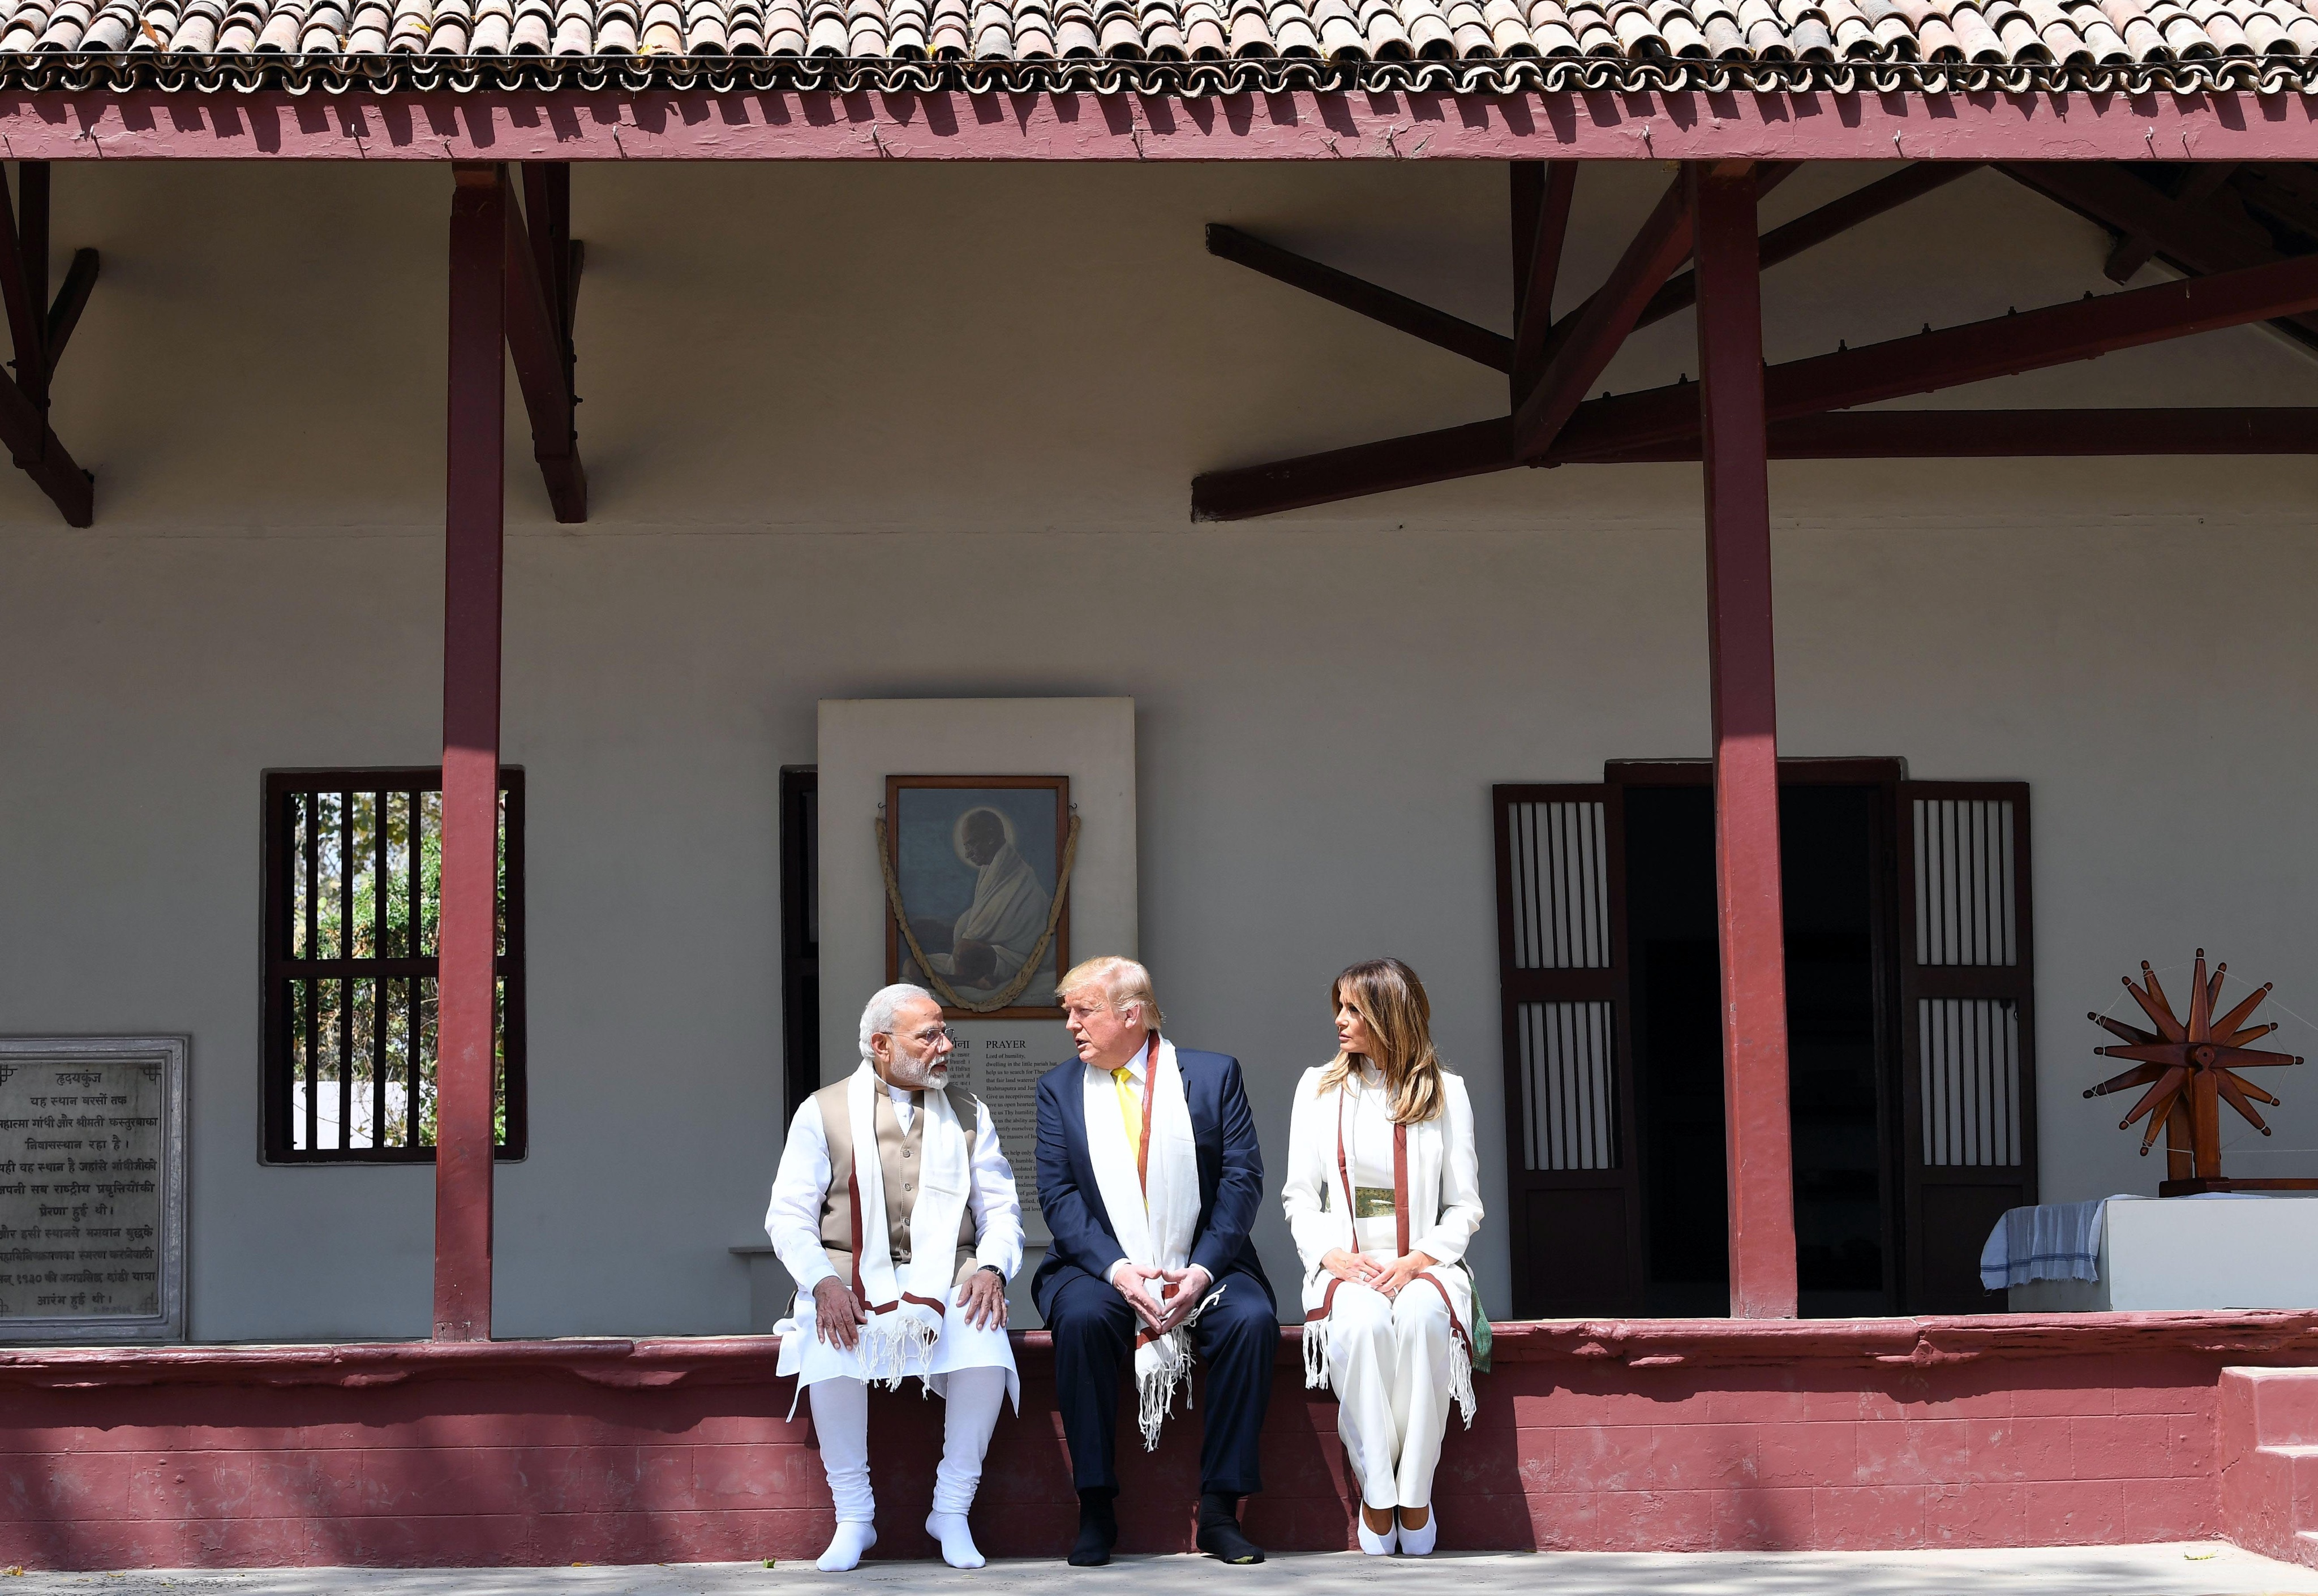 President Donald Trump's Visit to India: What Happened So far?